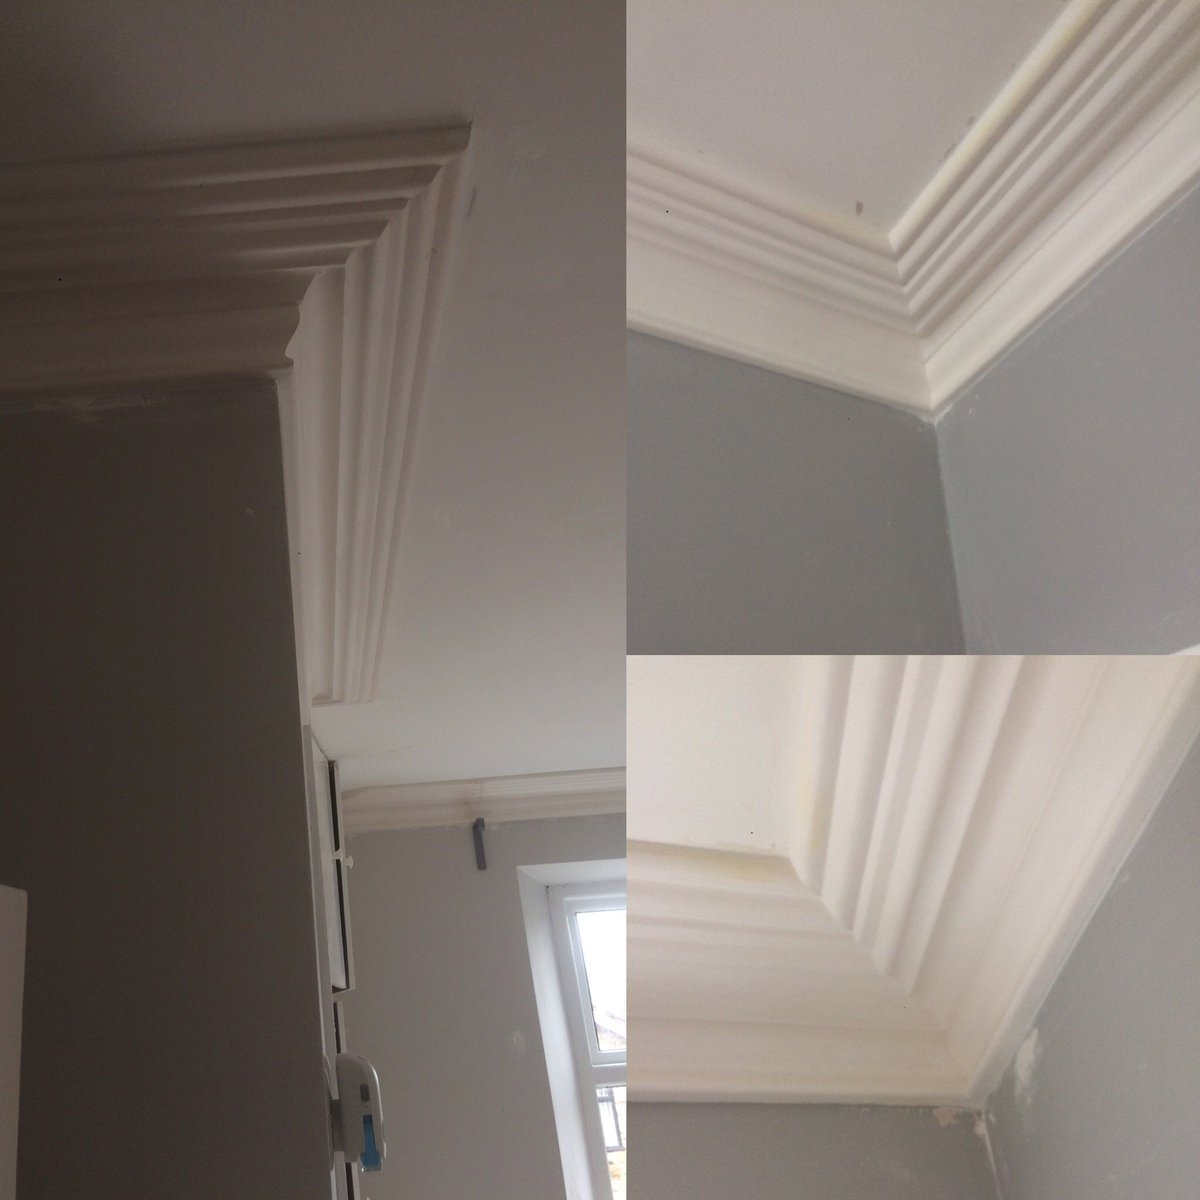 3 Rooms Fitted With This Victorian Cornice Yesterday For A Lovely Couple In  Sheffield The Finishing Touches Make The Difference ...